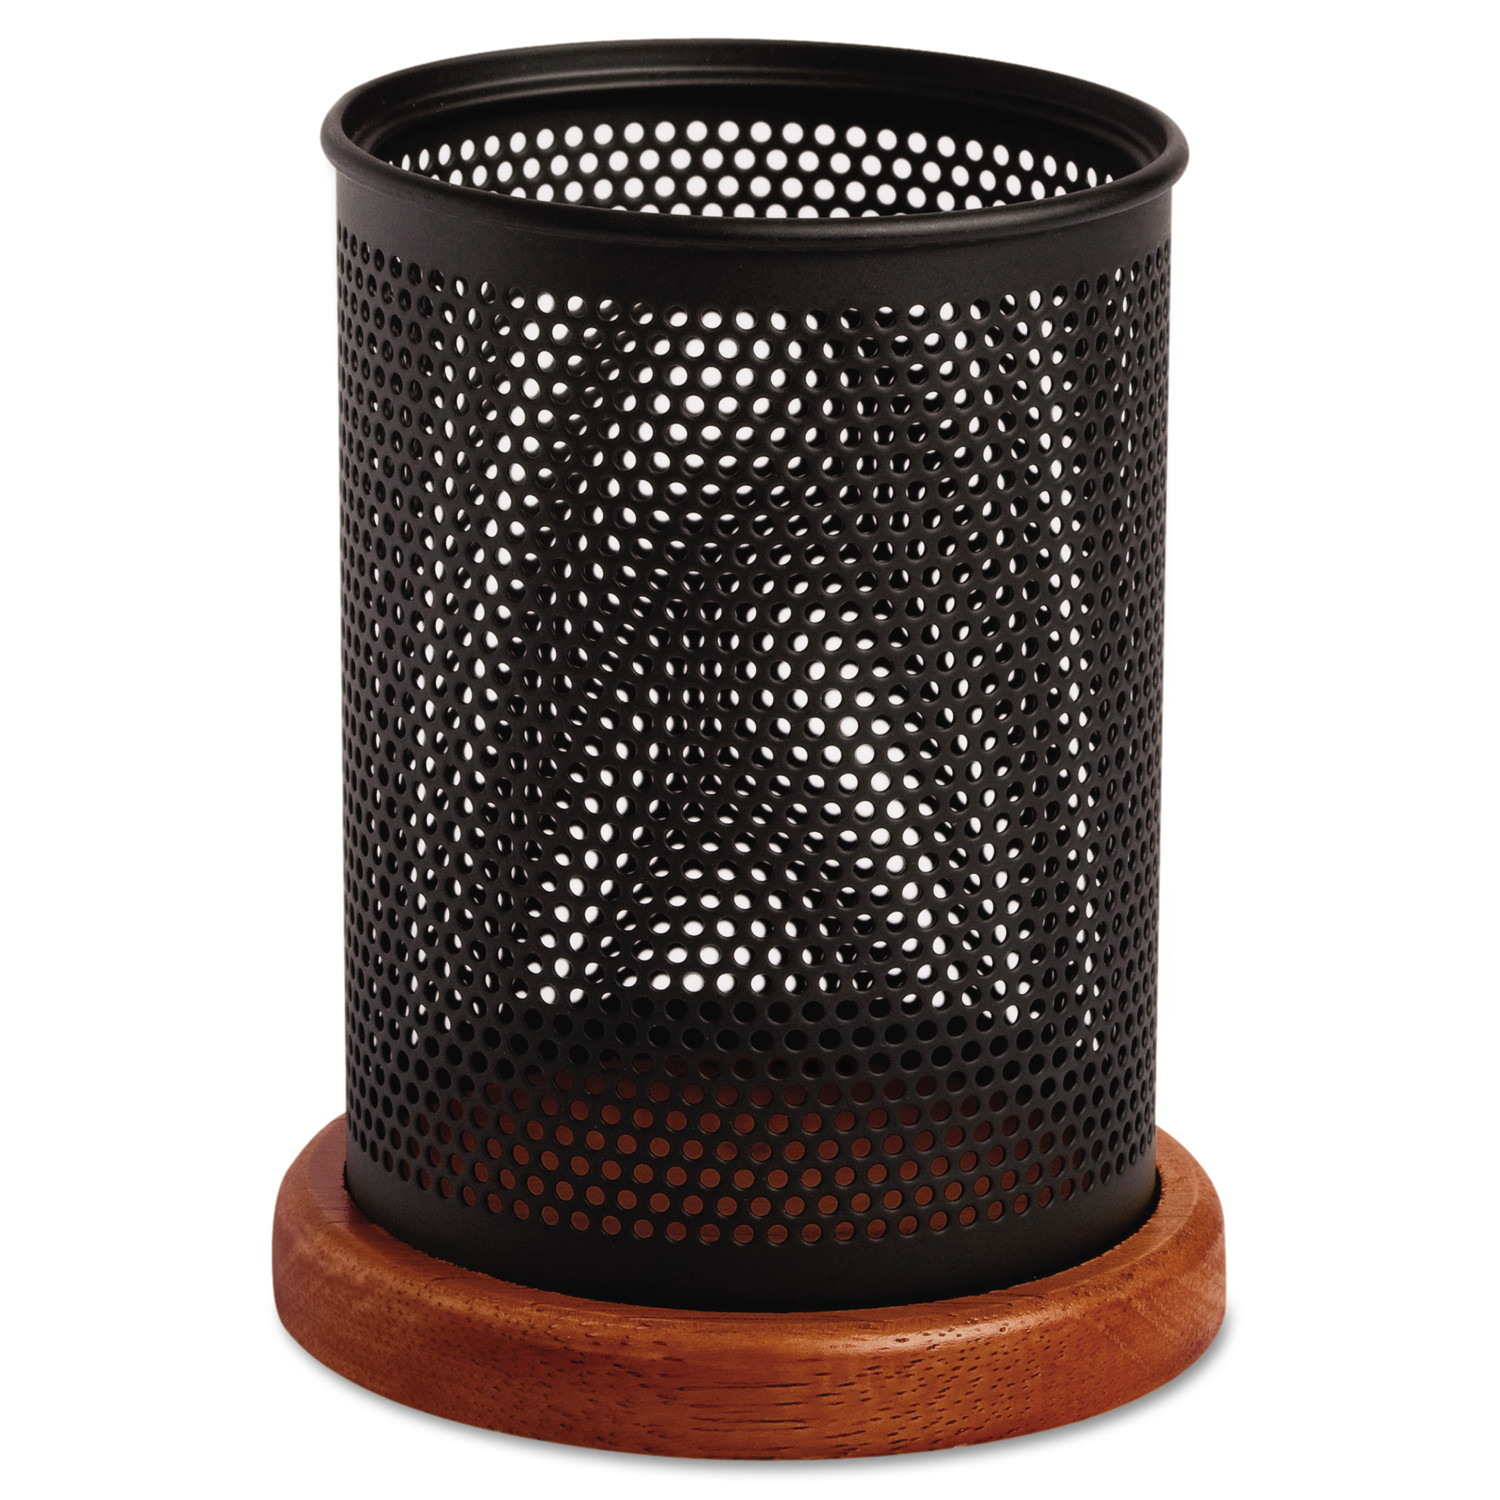 Rolodex Distinctions Metal and Wood Pencil Cup ROL1813862